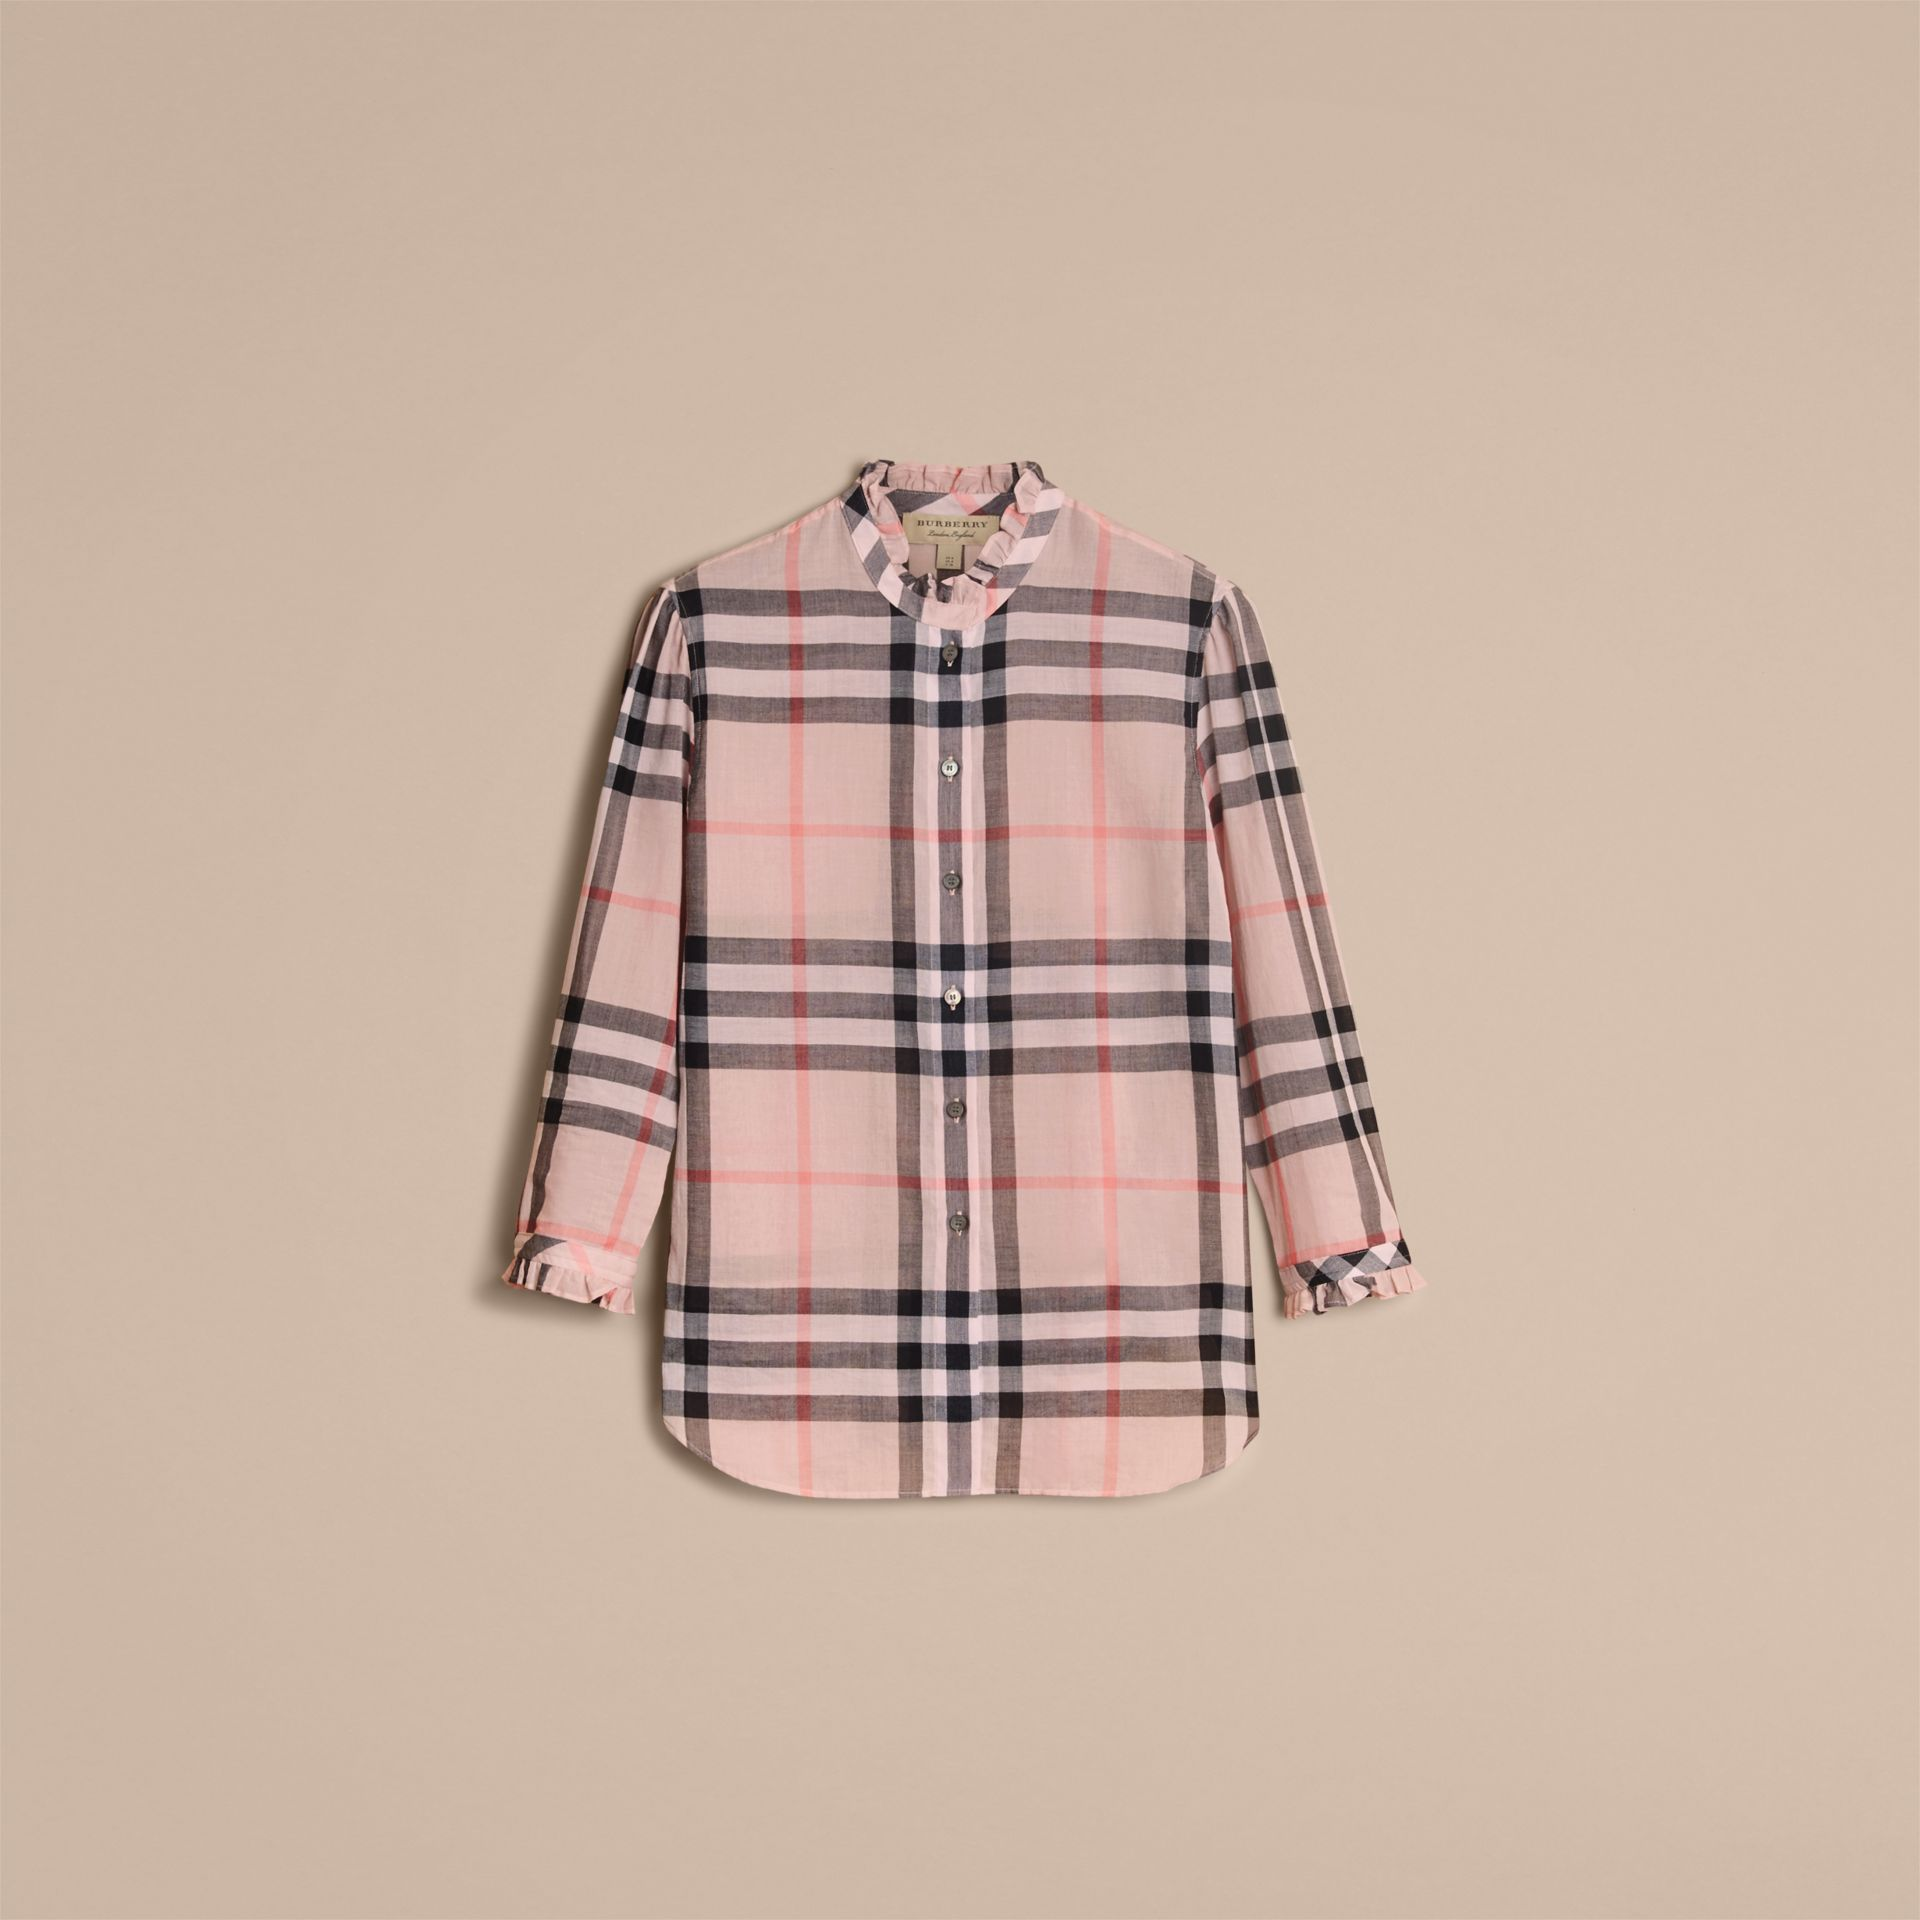 Ruffle Detail Check Cotton Shirt in Vintage Pink - Women | Burberry - gallery image 4